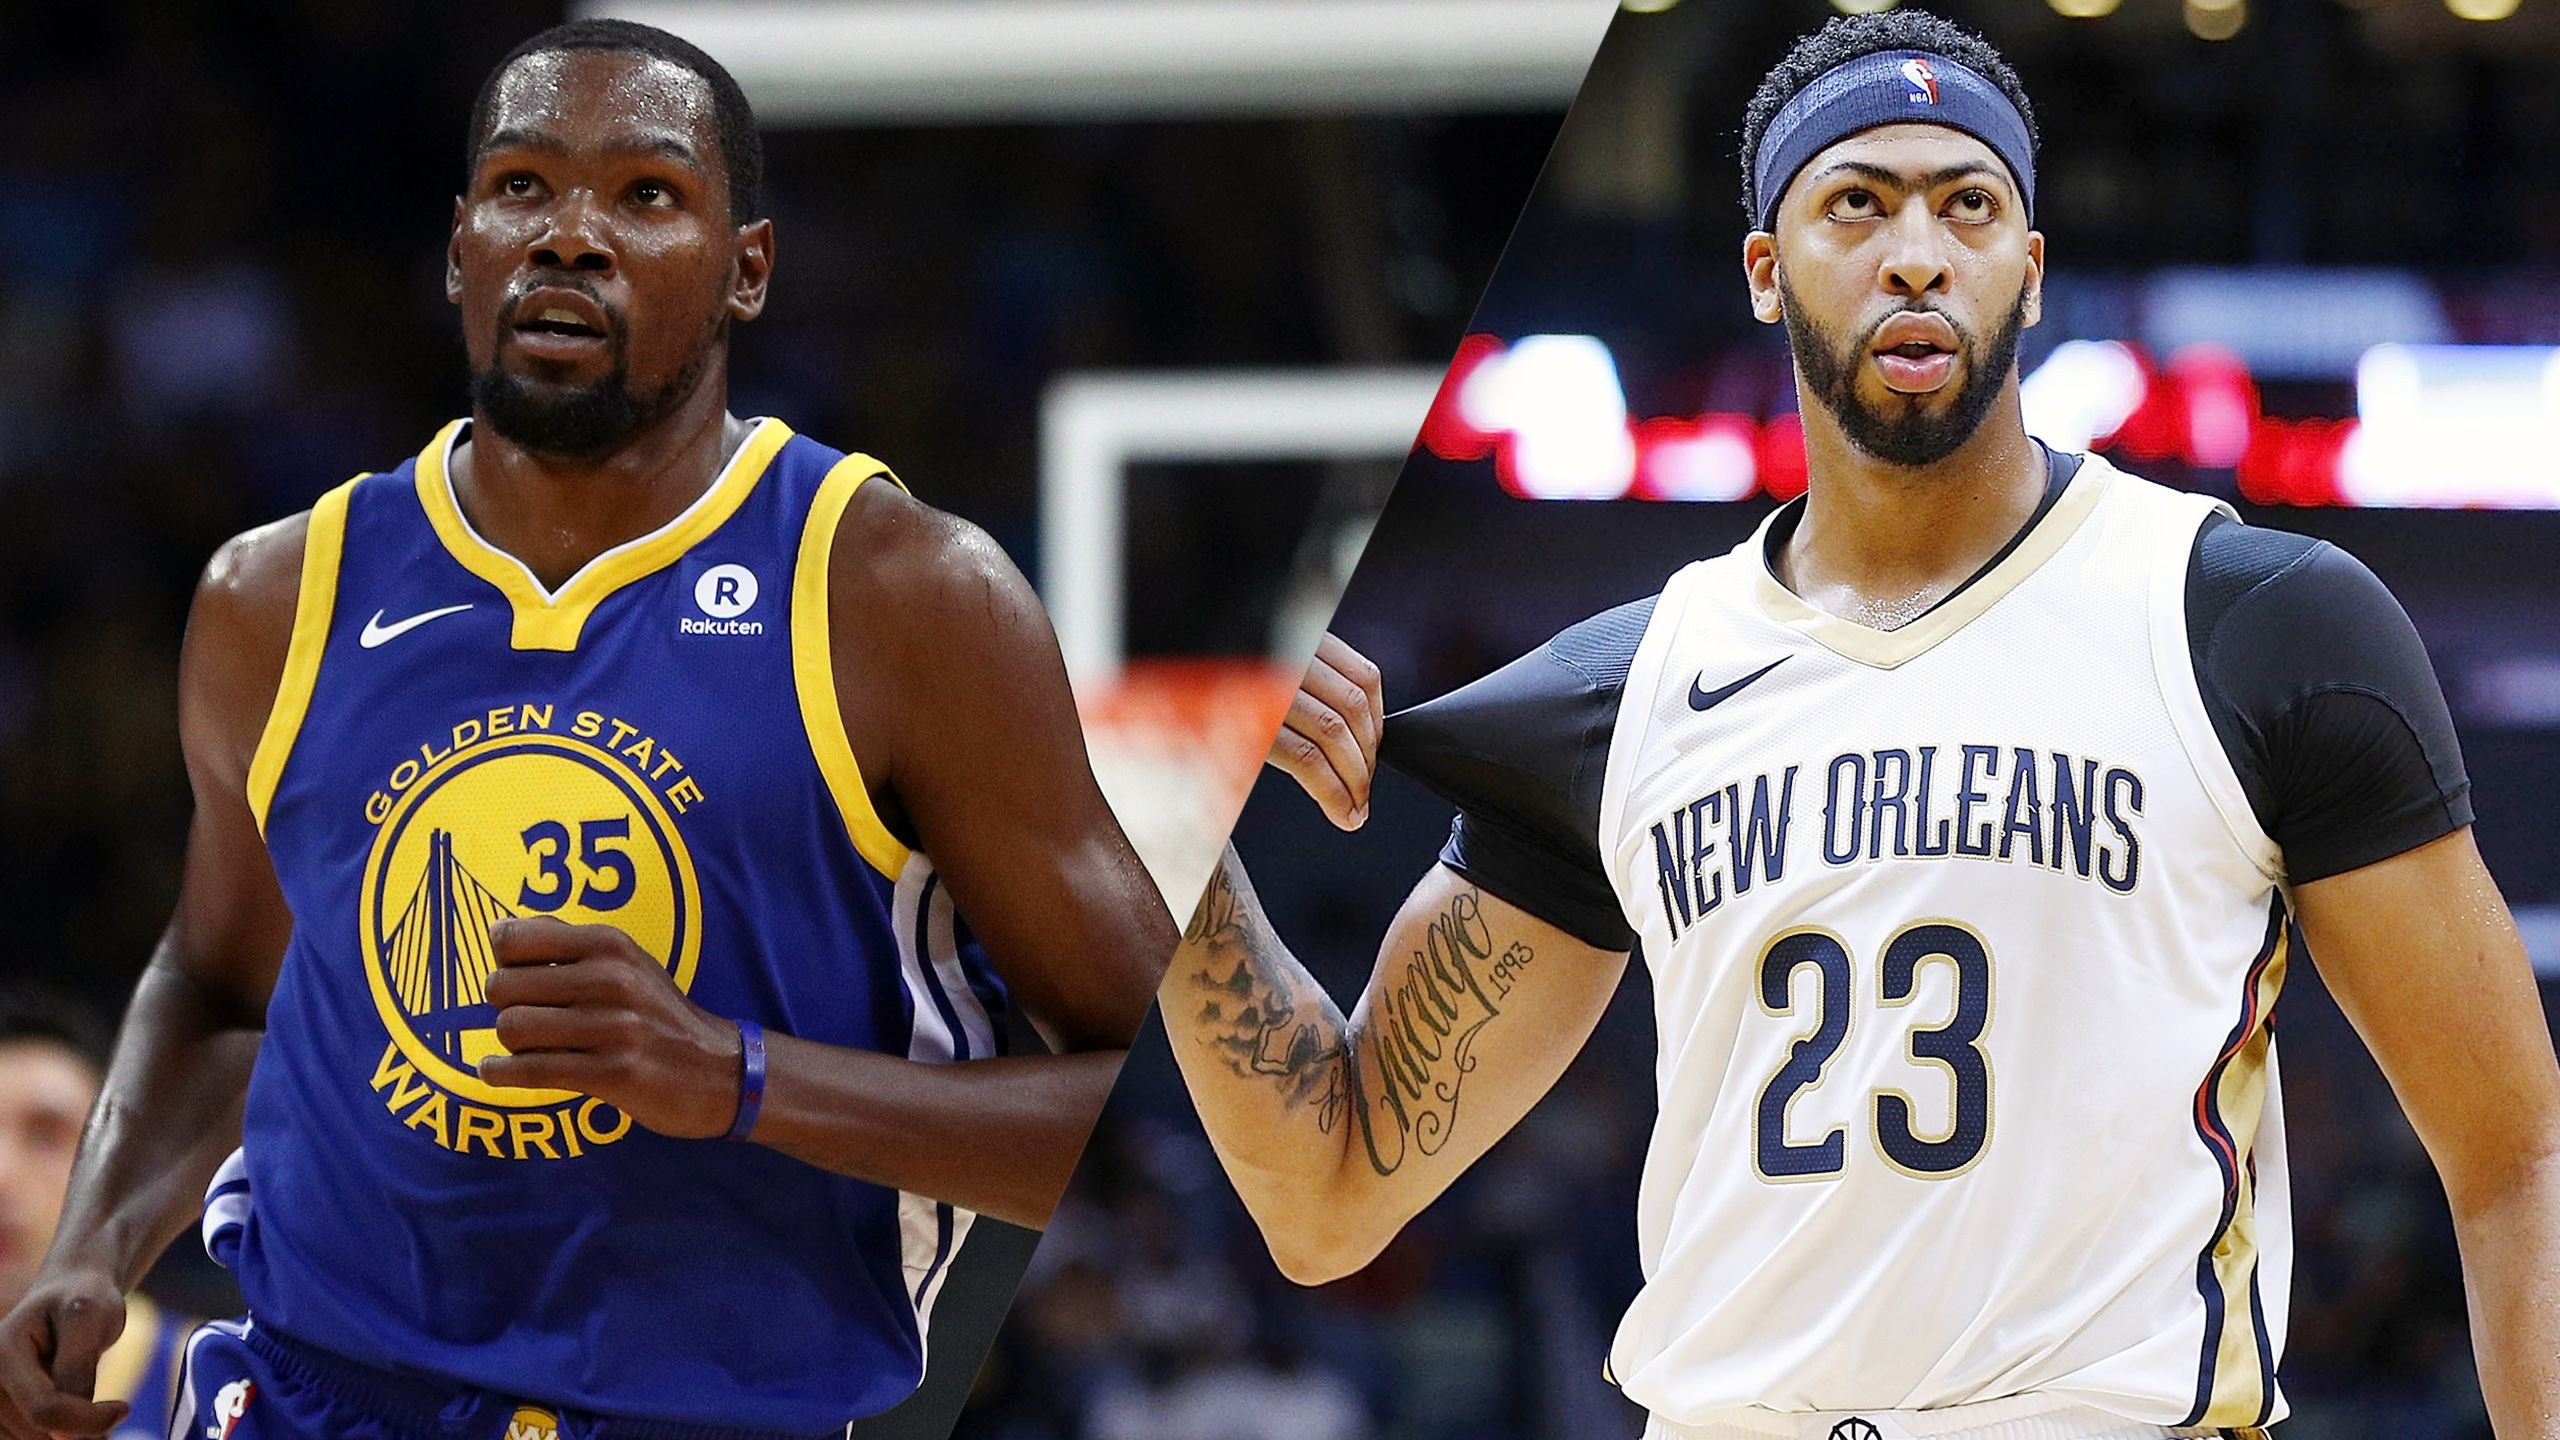 Golden State Warriors vs. New Orleans Pelicans